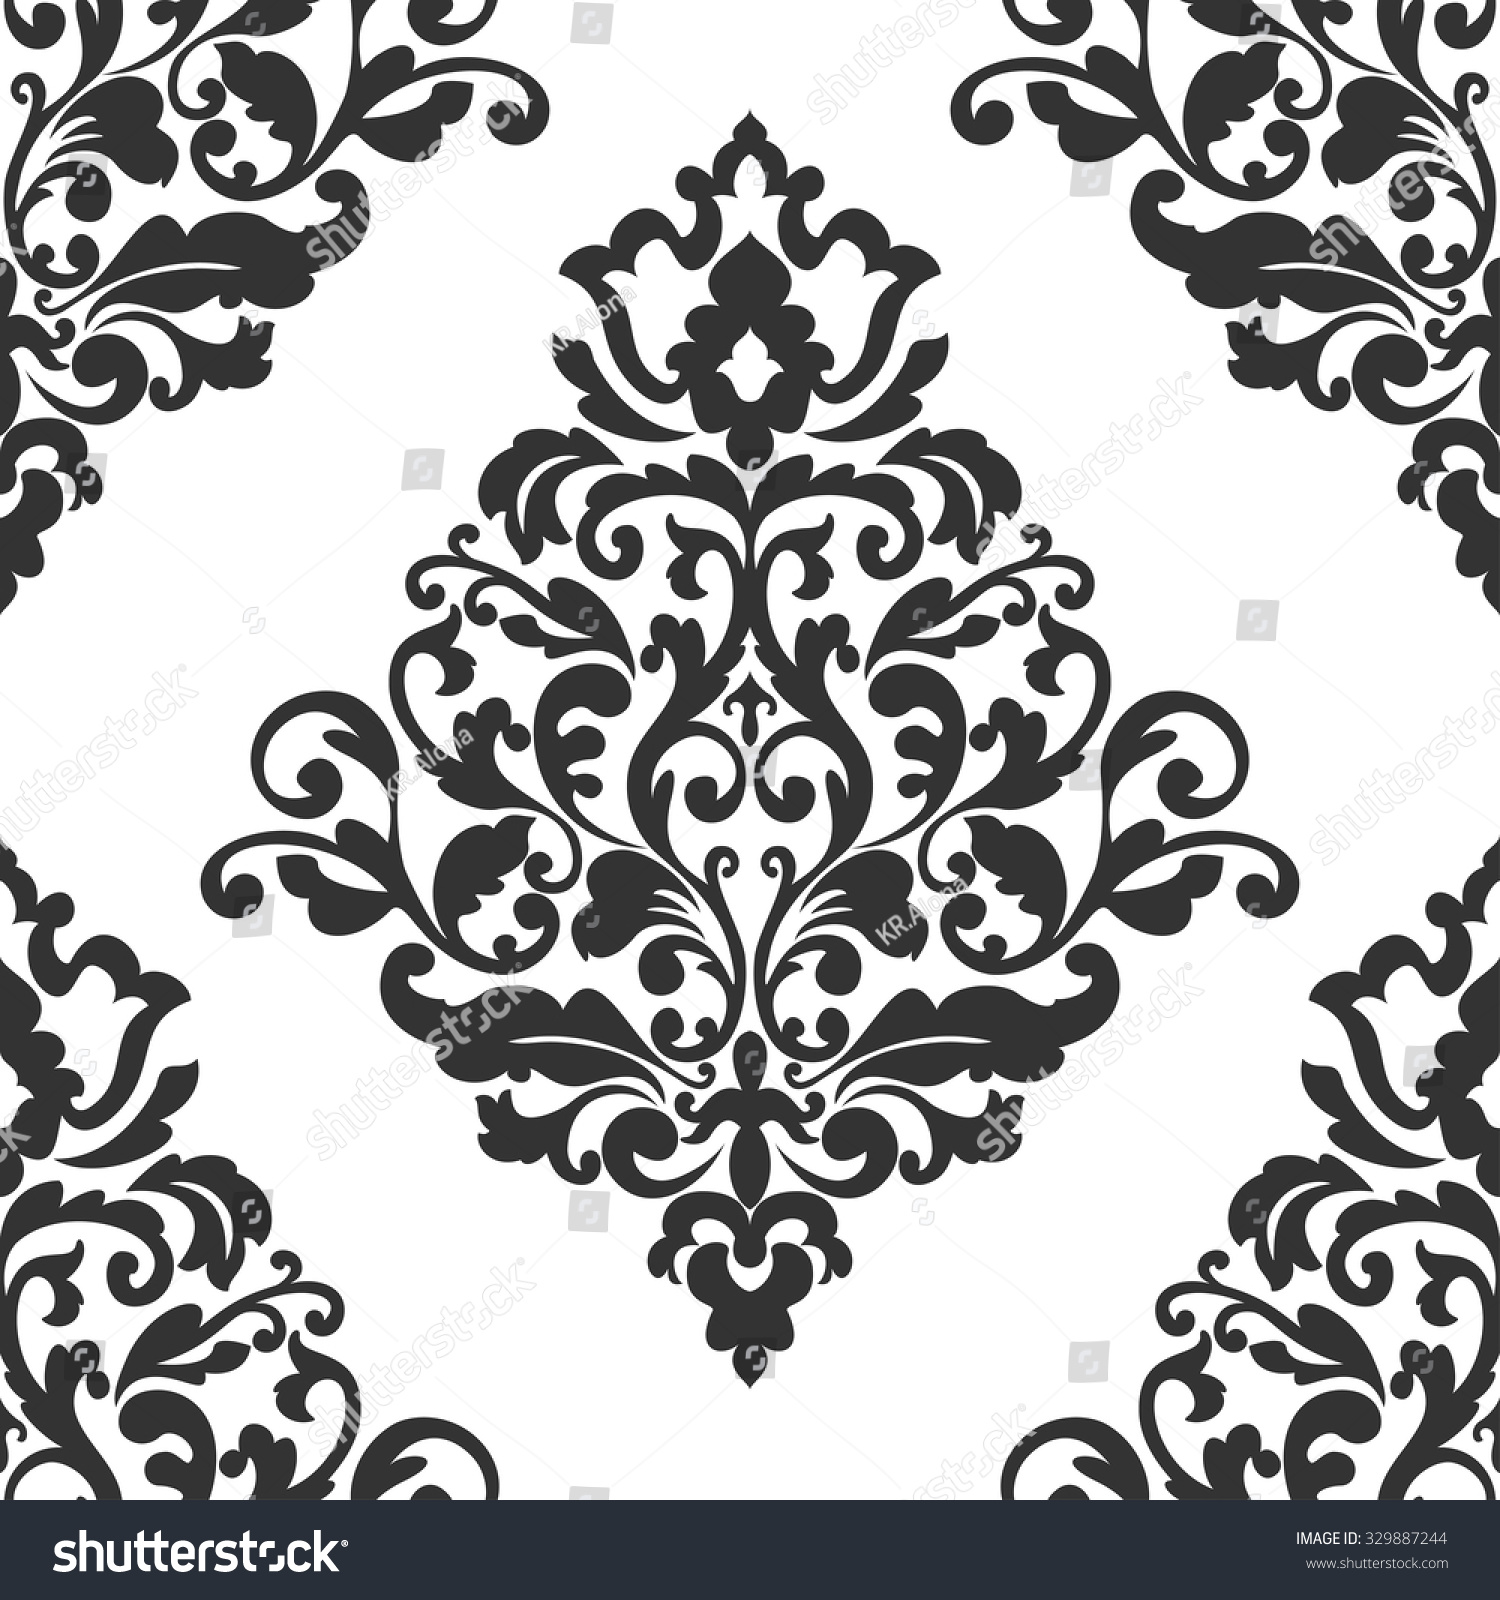 Elegant damask wallpaper black and white vintage pattern seamless classic vector background